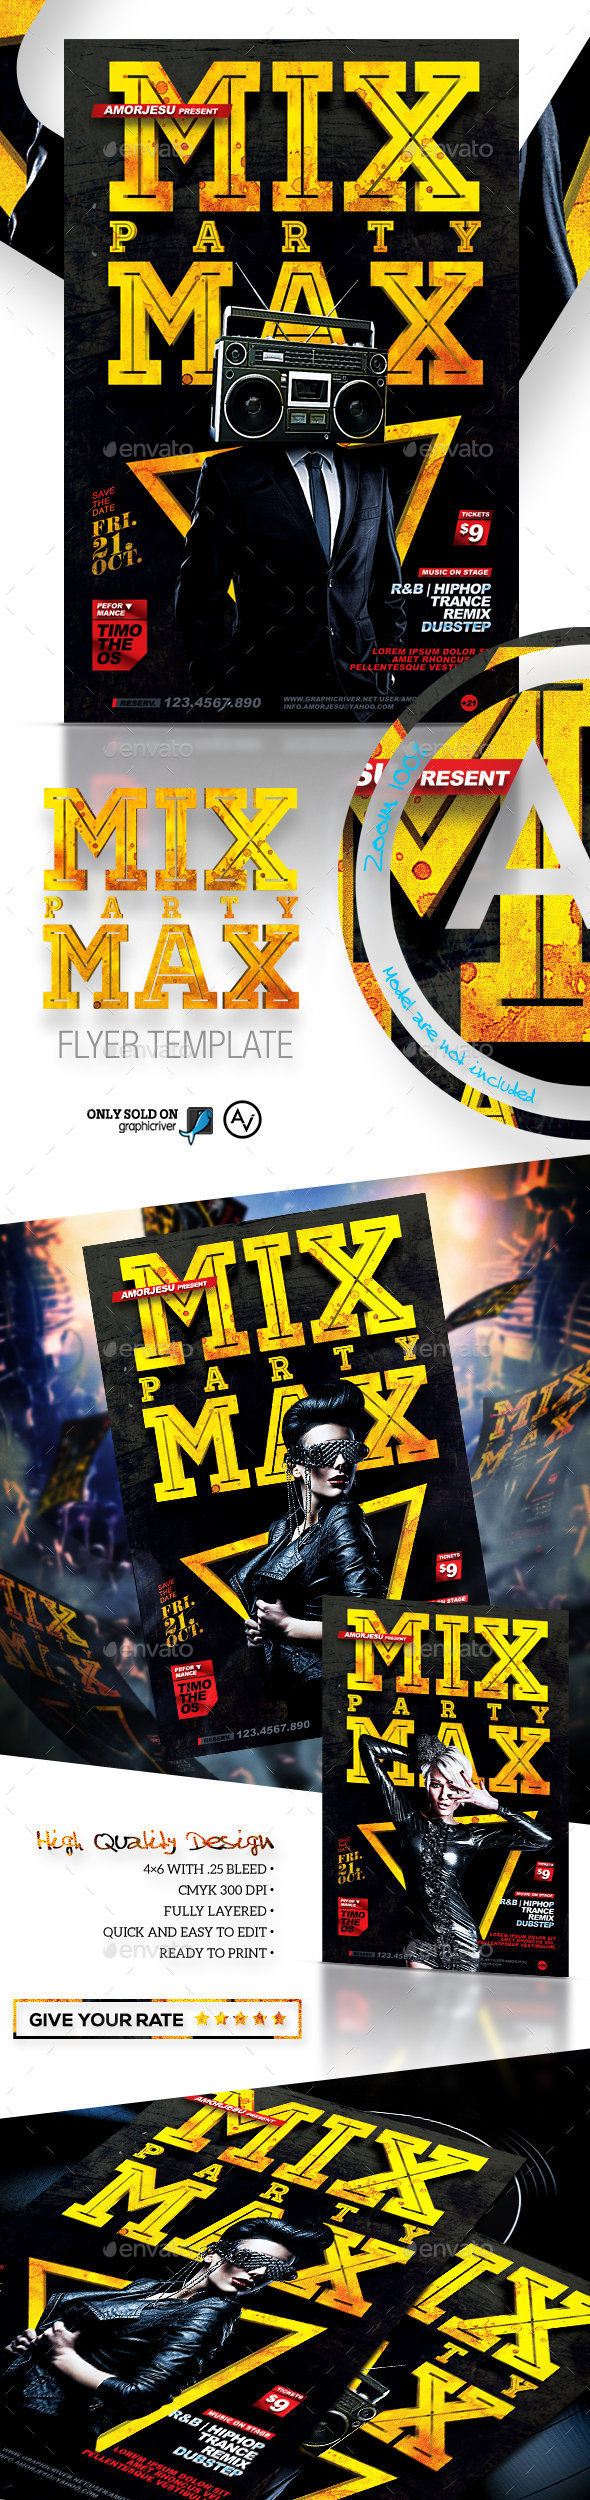 Mix Max Party Flyer Template - Clubs & Parties Events